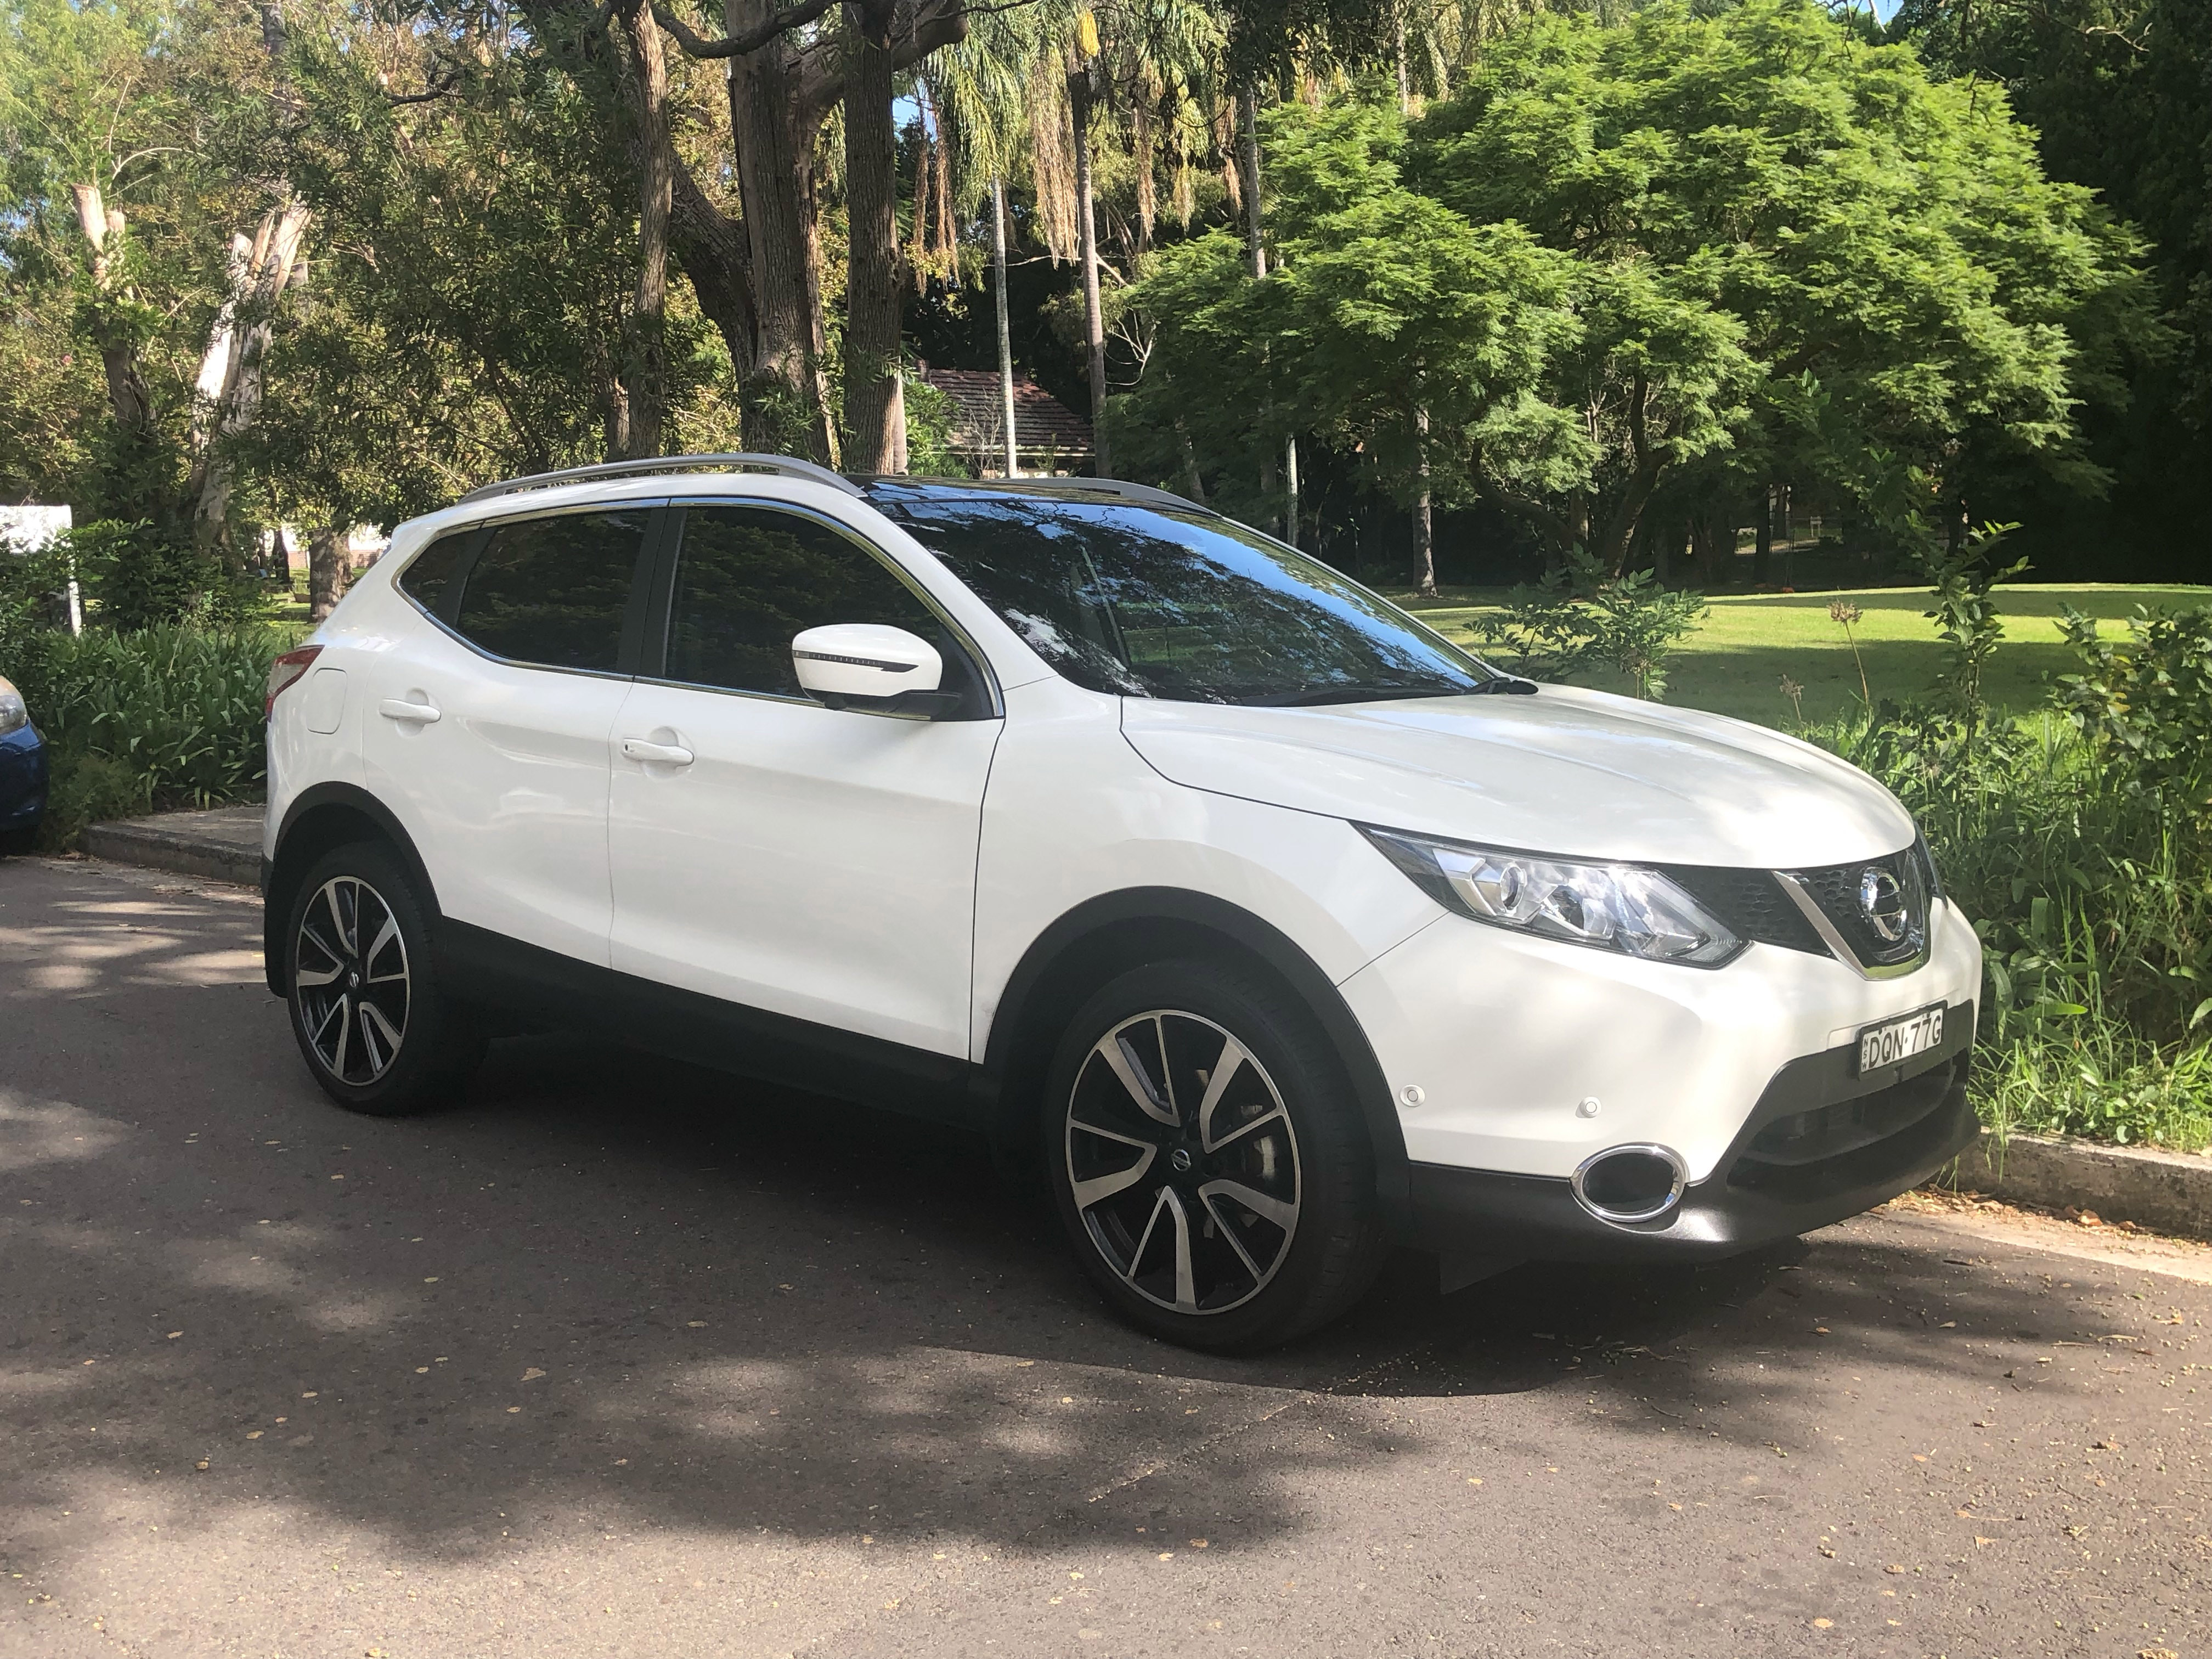 Picture of Dennis' 2017 Nissan Qashqai